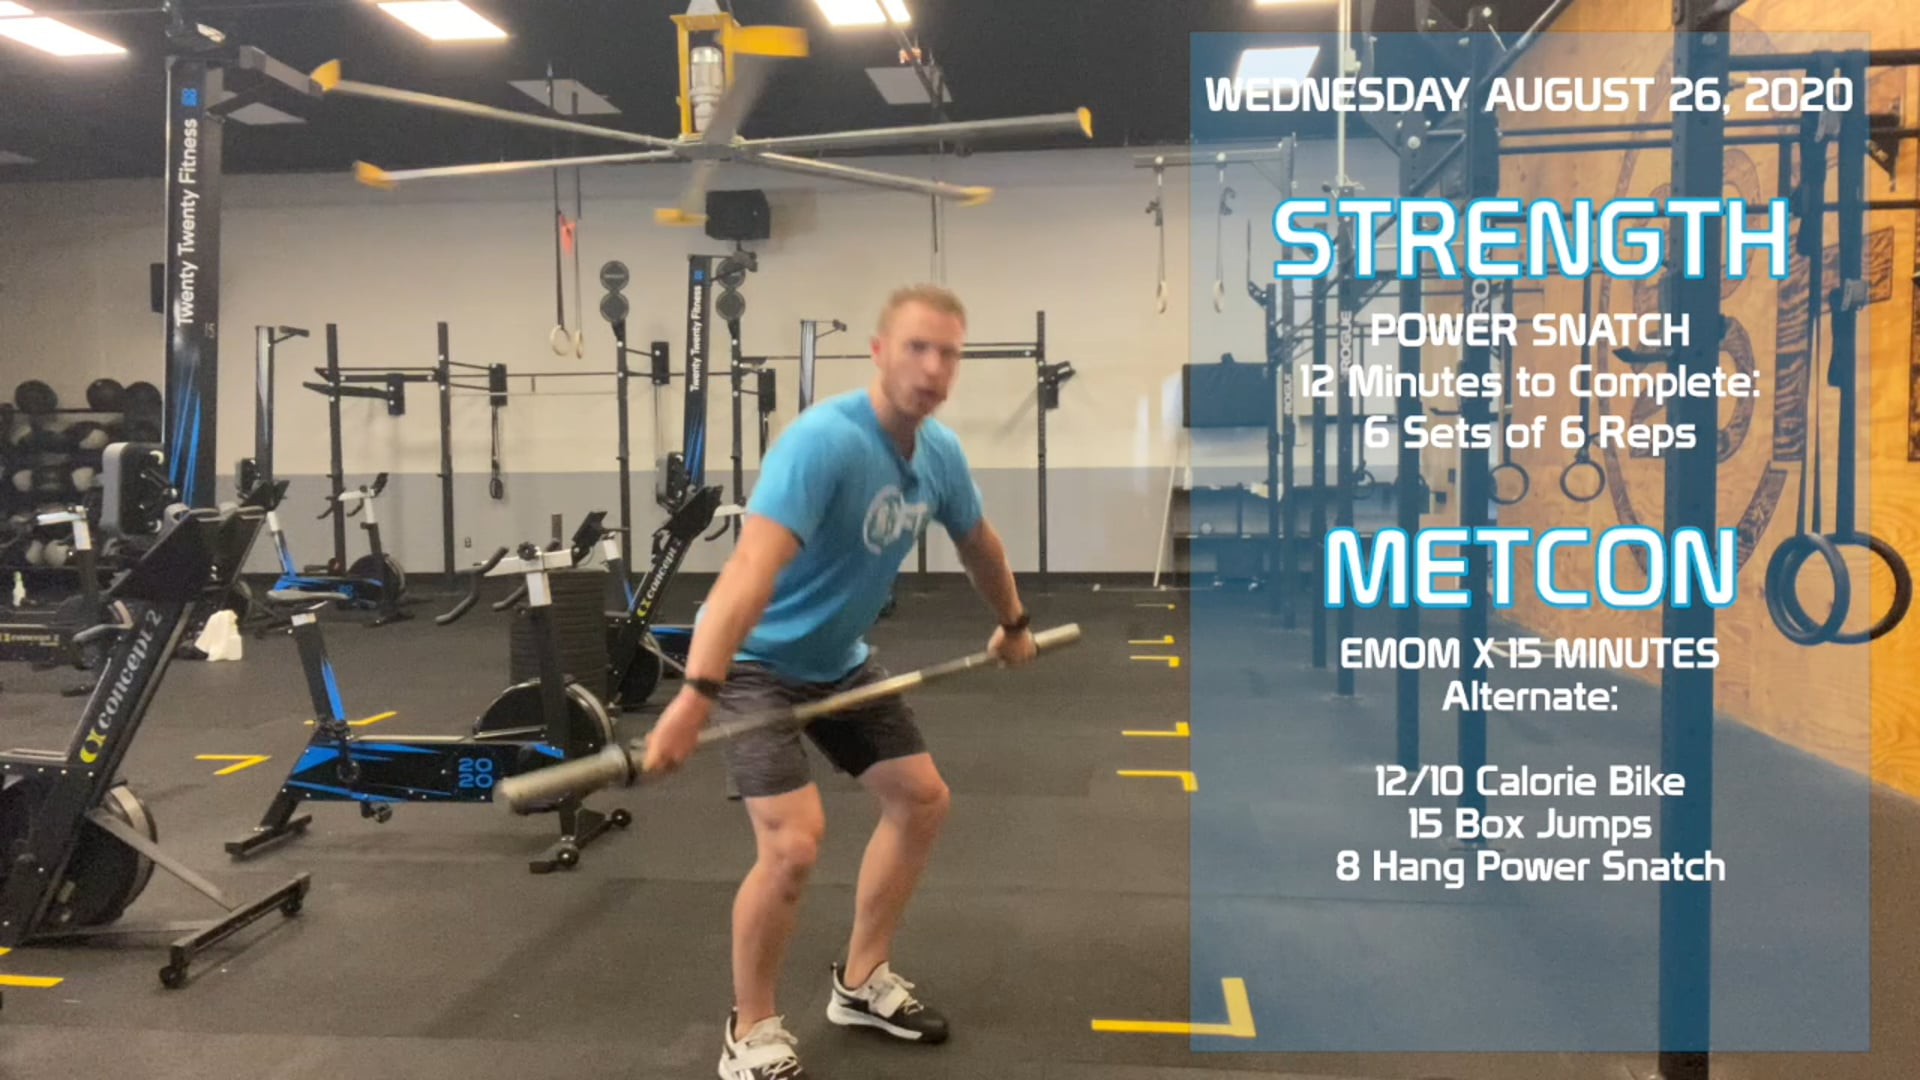 Wednesday August 26th